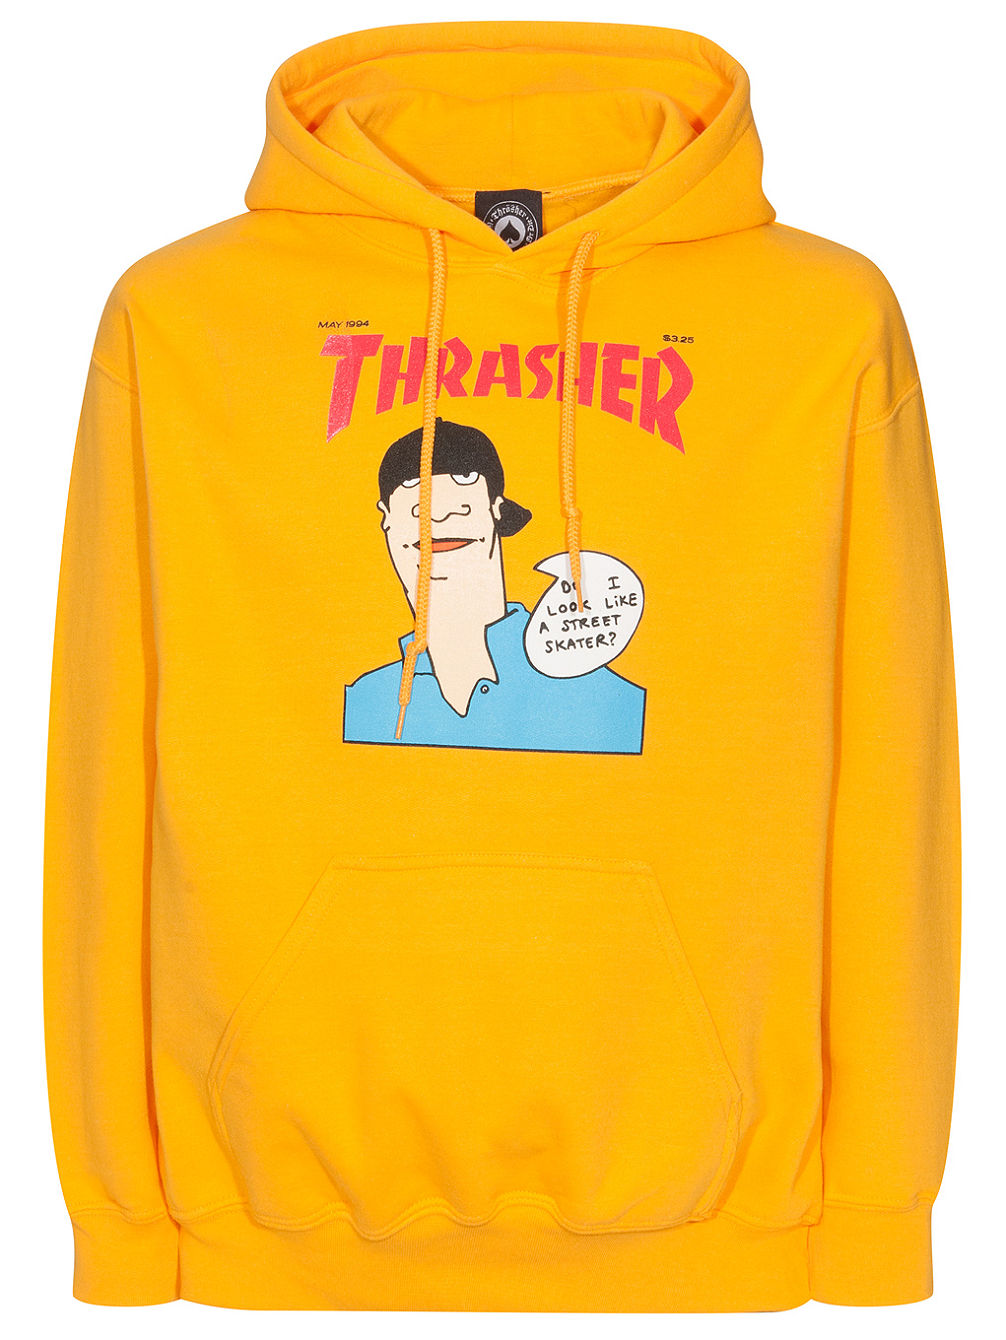 buy thrasher gonz cover hoodie online at blue tomato